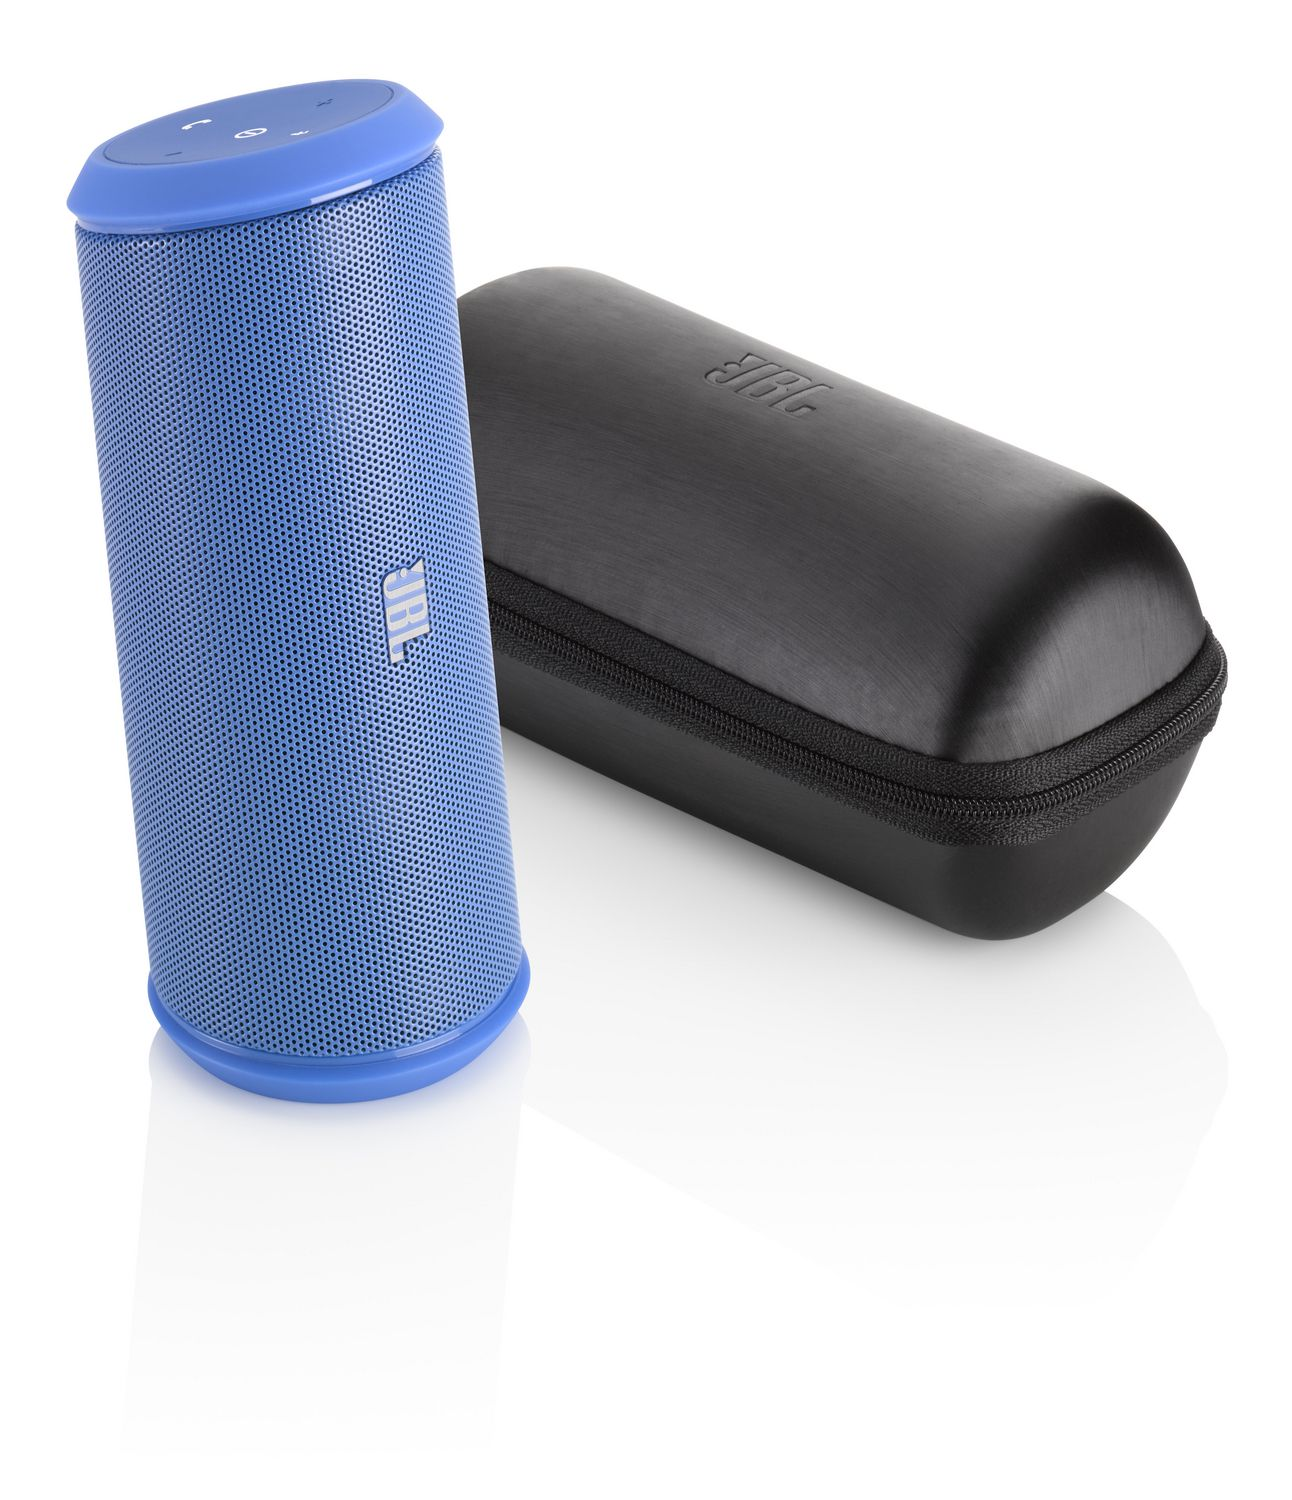 jbl wireless speakers. jbl wireless speakers